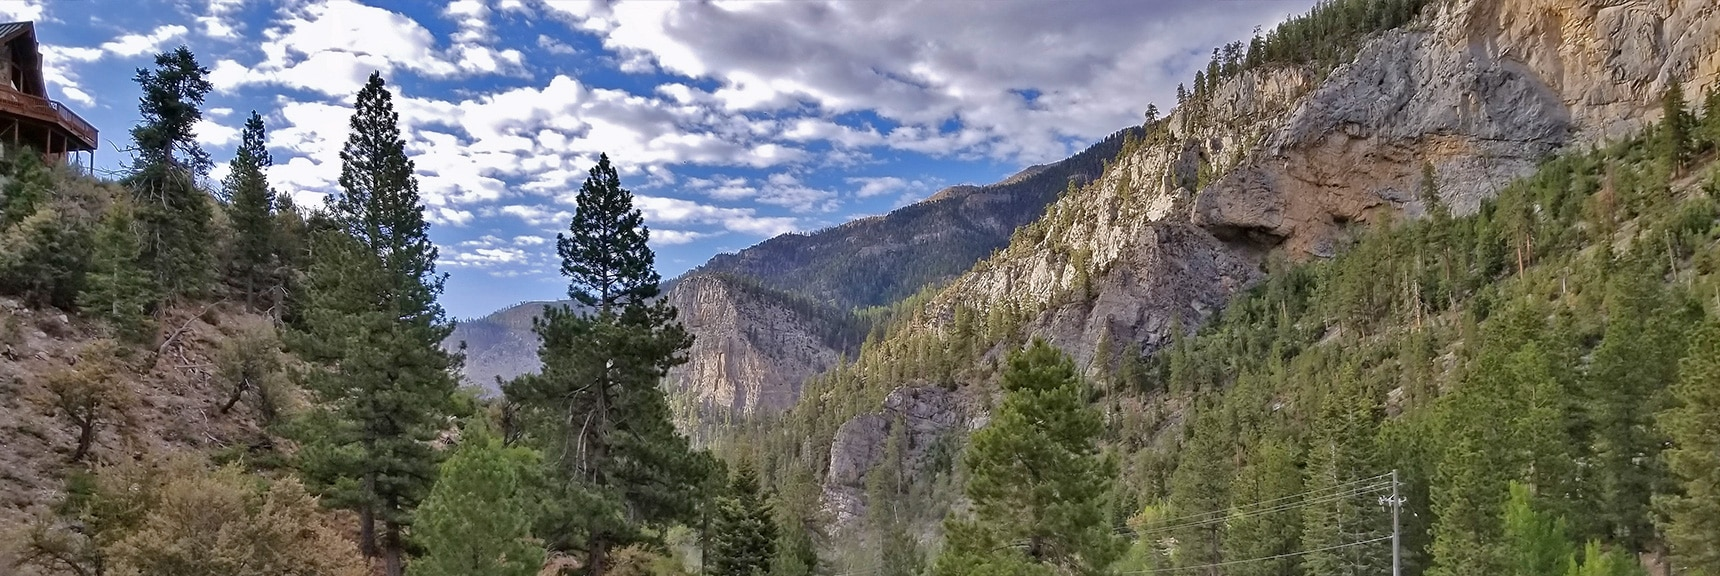 View Toward Cathedral Rock from the Trail Canyon Trailhead | Mummy Mountain NW Cliffs | Mt Charleston Wilderness | Spring Mountains, Nevada